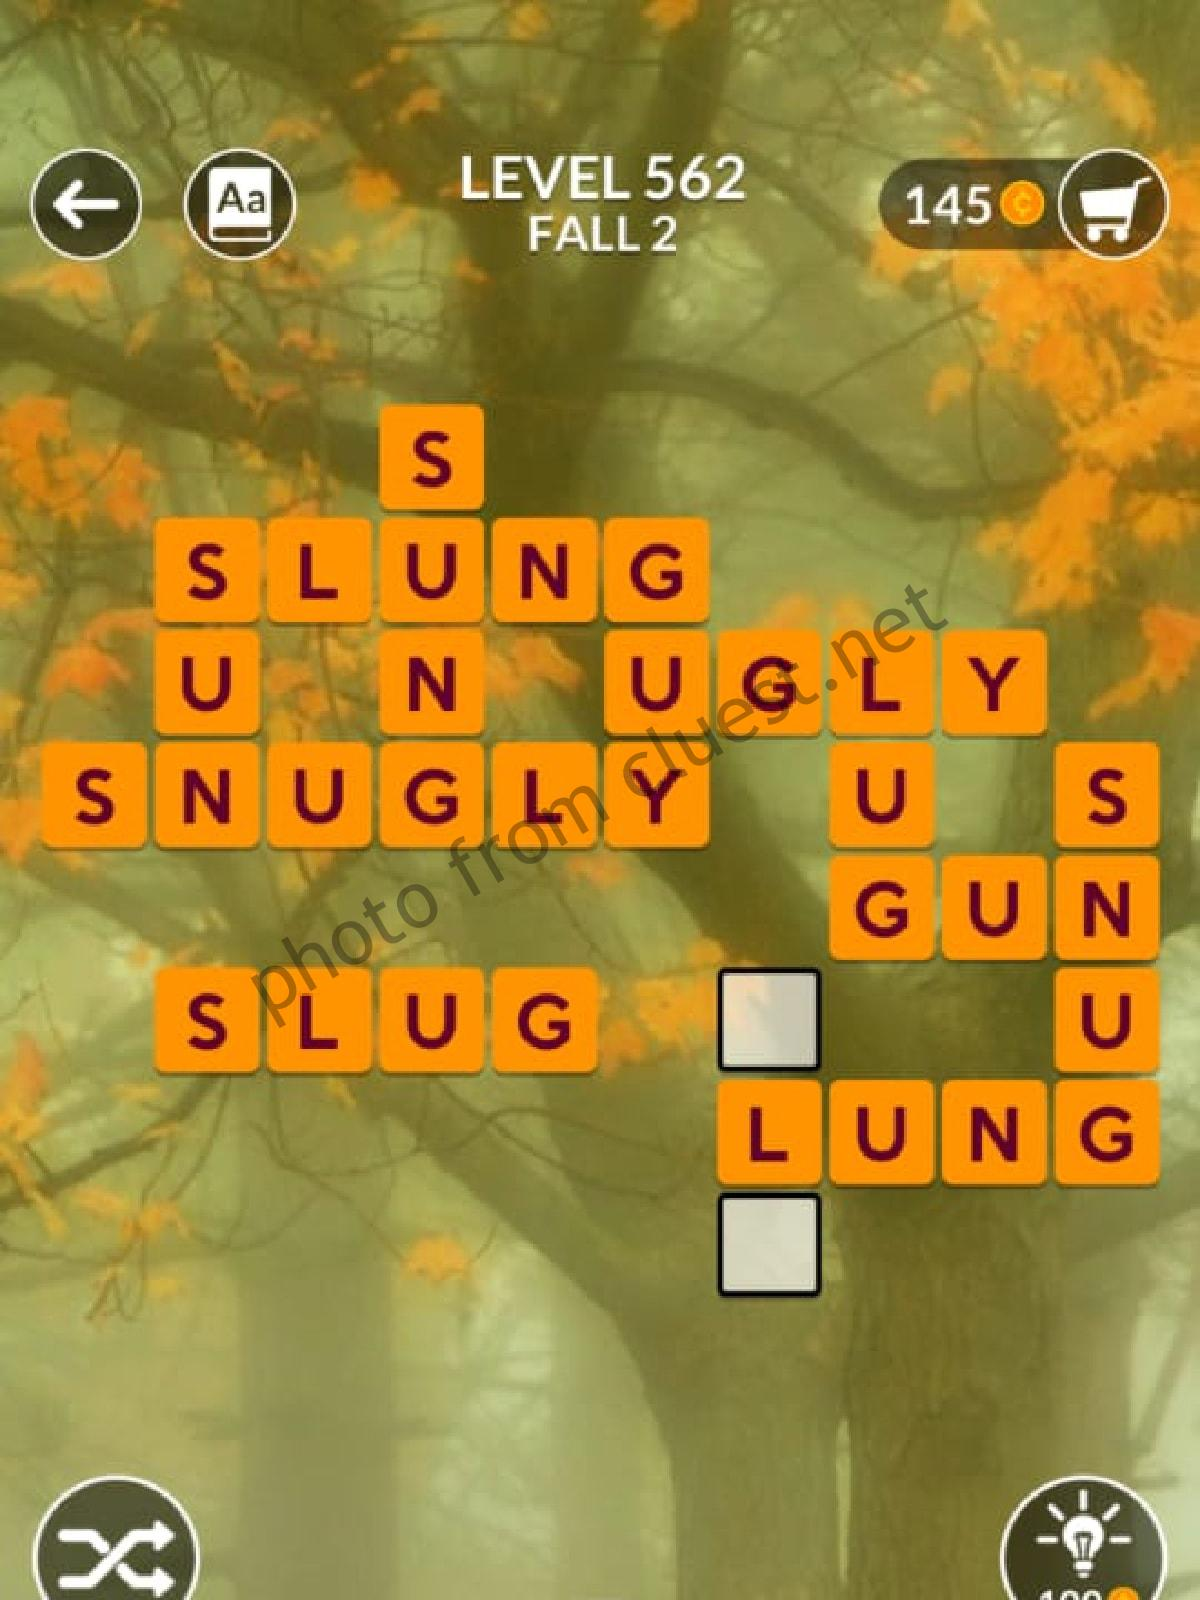 Wordscapes Level 562 Fall 2 Answers Cluest